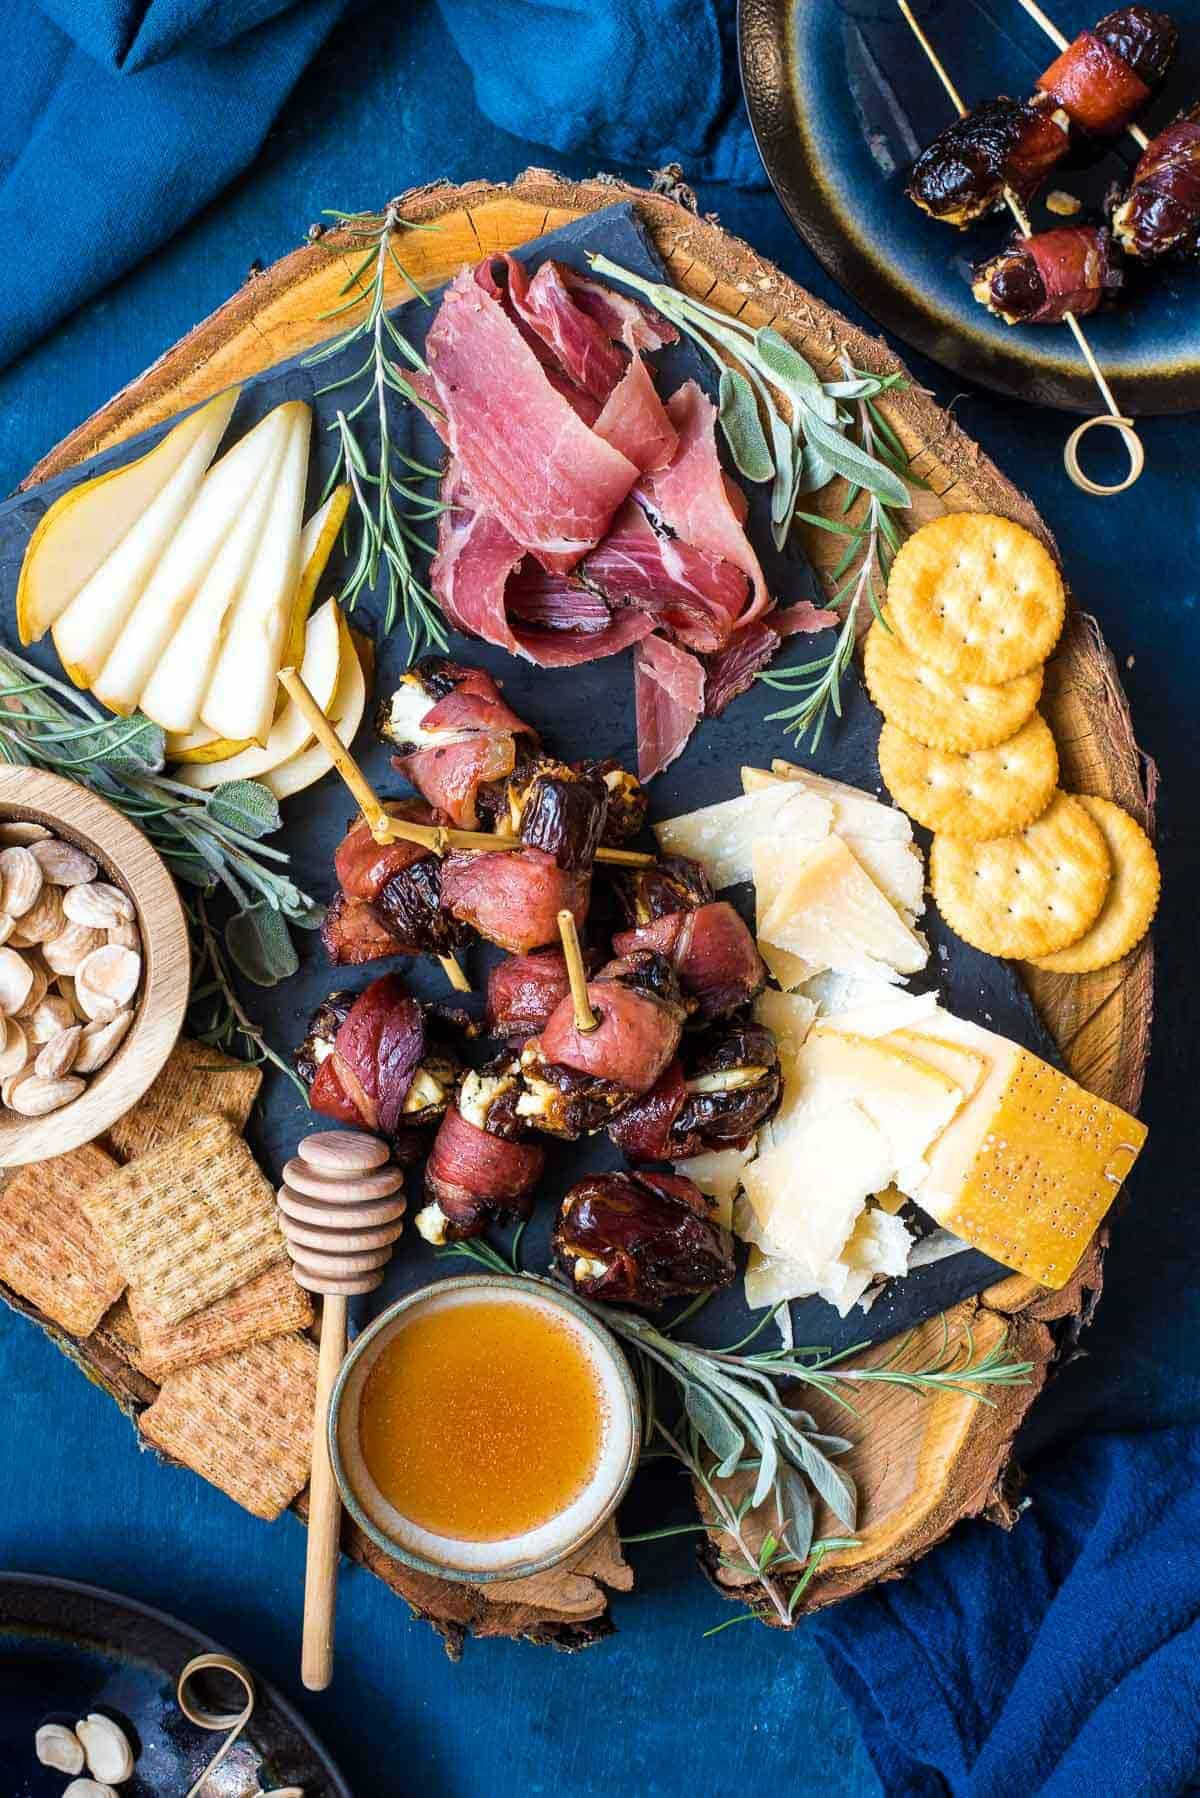 These Speck Wrapped Goat Cheese Dates make a perfect sweet and savory appetizer for the holidays!